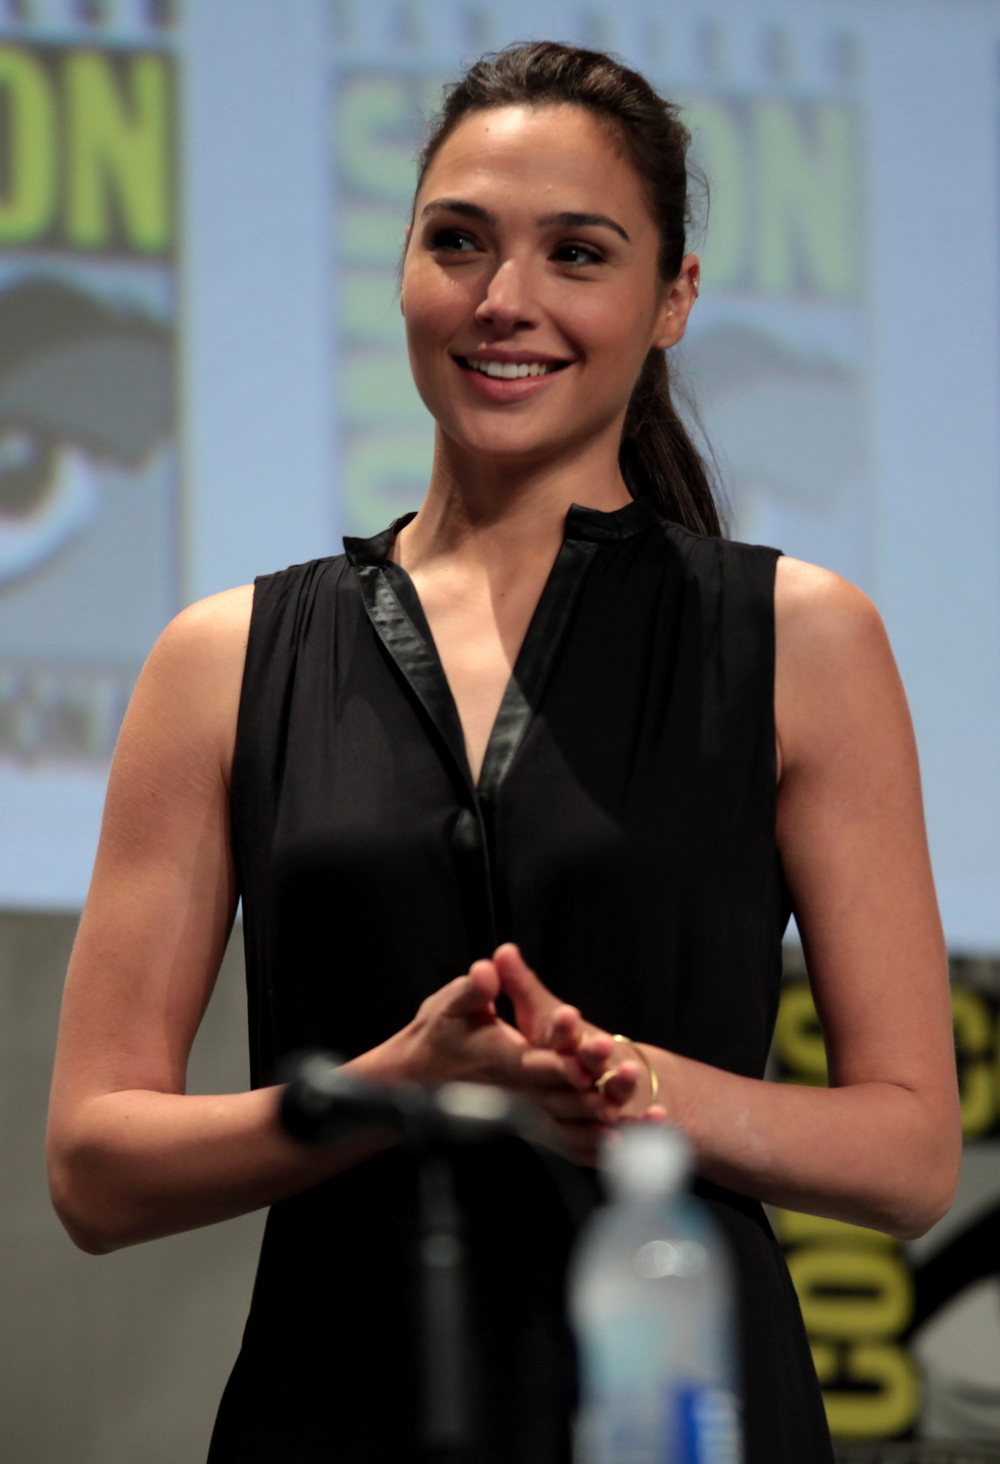 Israeli actress Gal Gadot, who plays Wonder Woman in an upcoming film about the super-heroine. Credit: Wikimedia Commons.